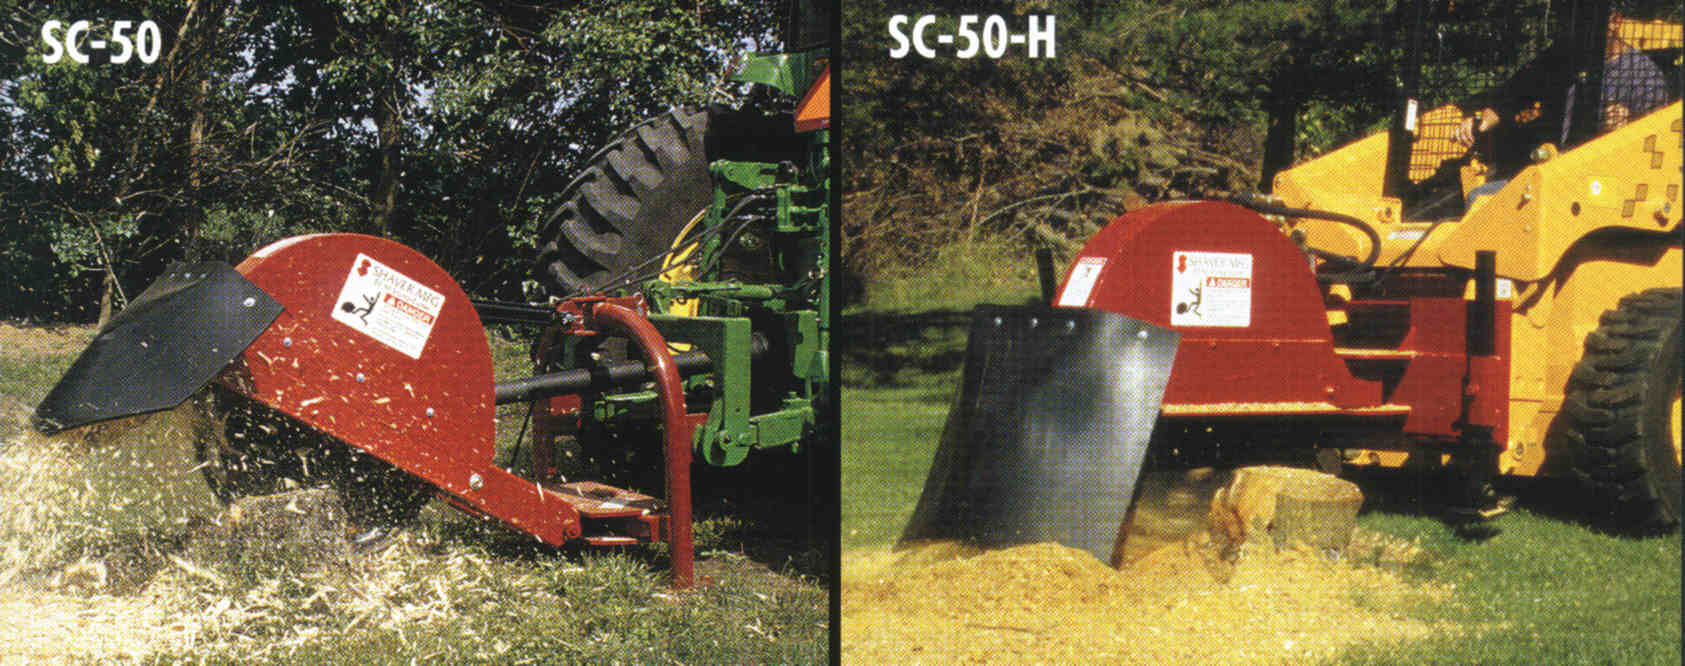 Available In Tractor Or Skid Steer Versions